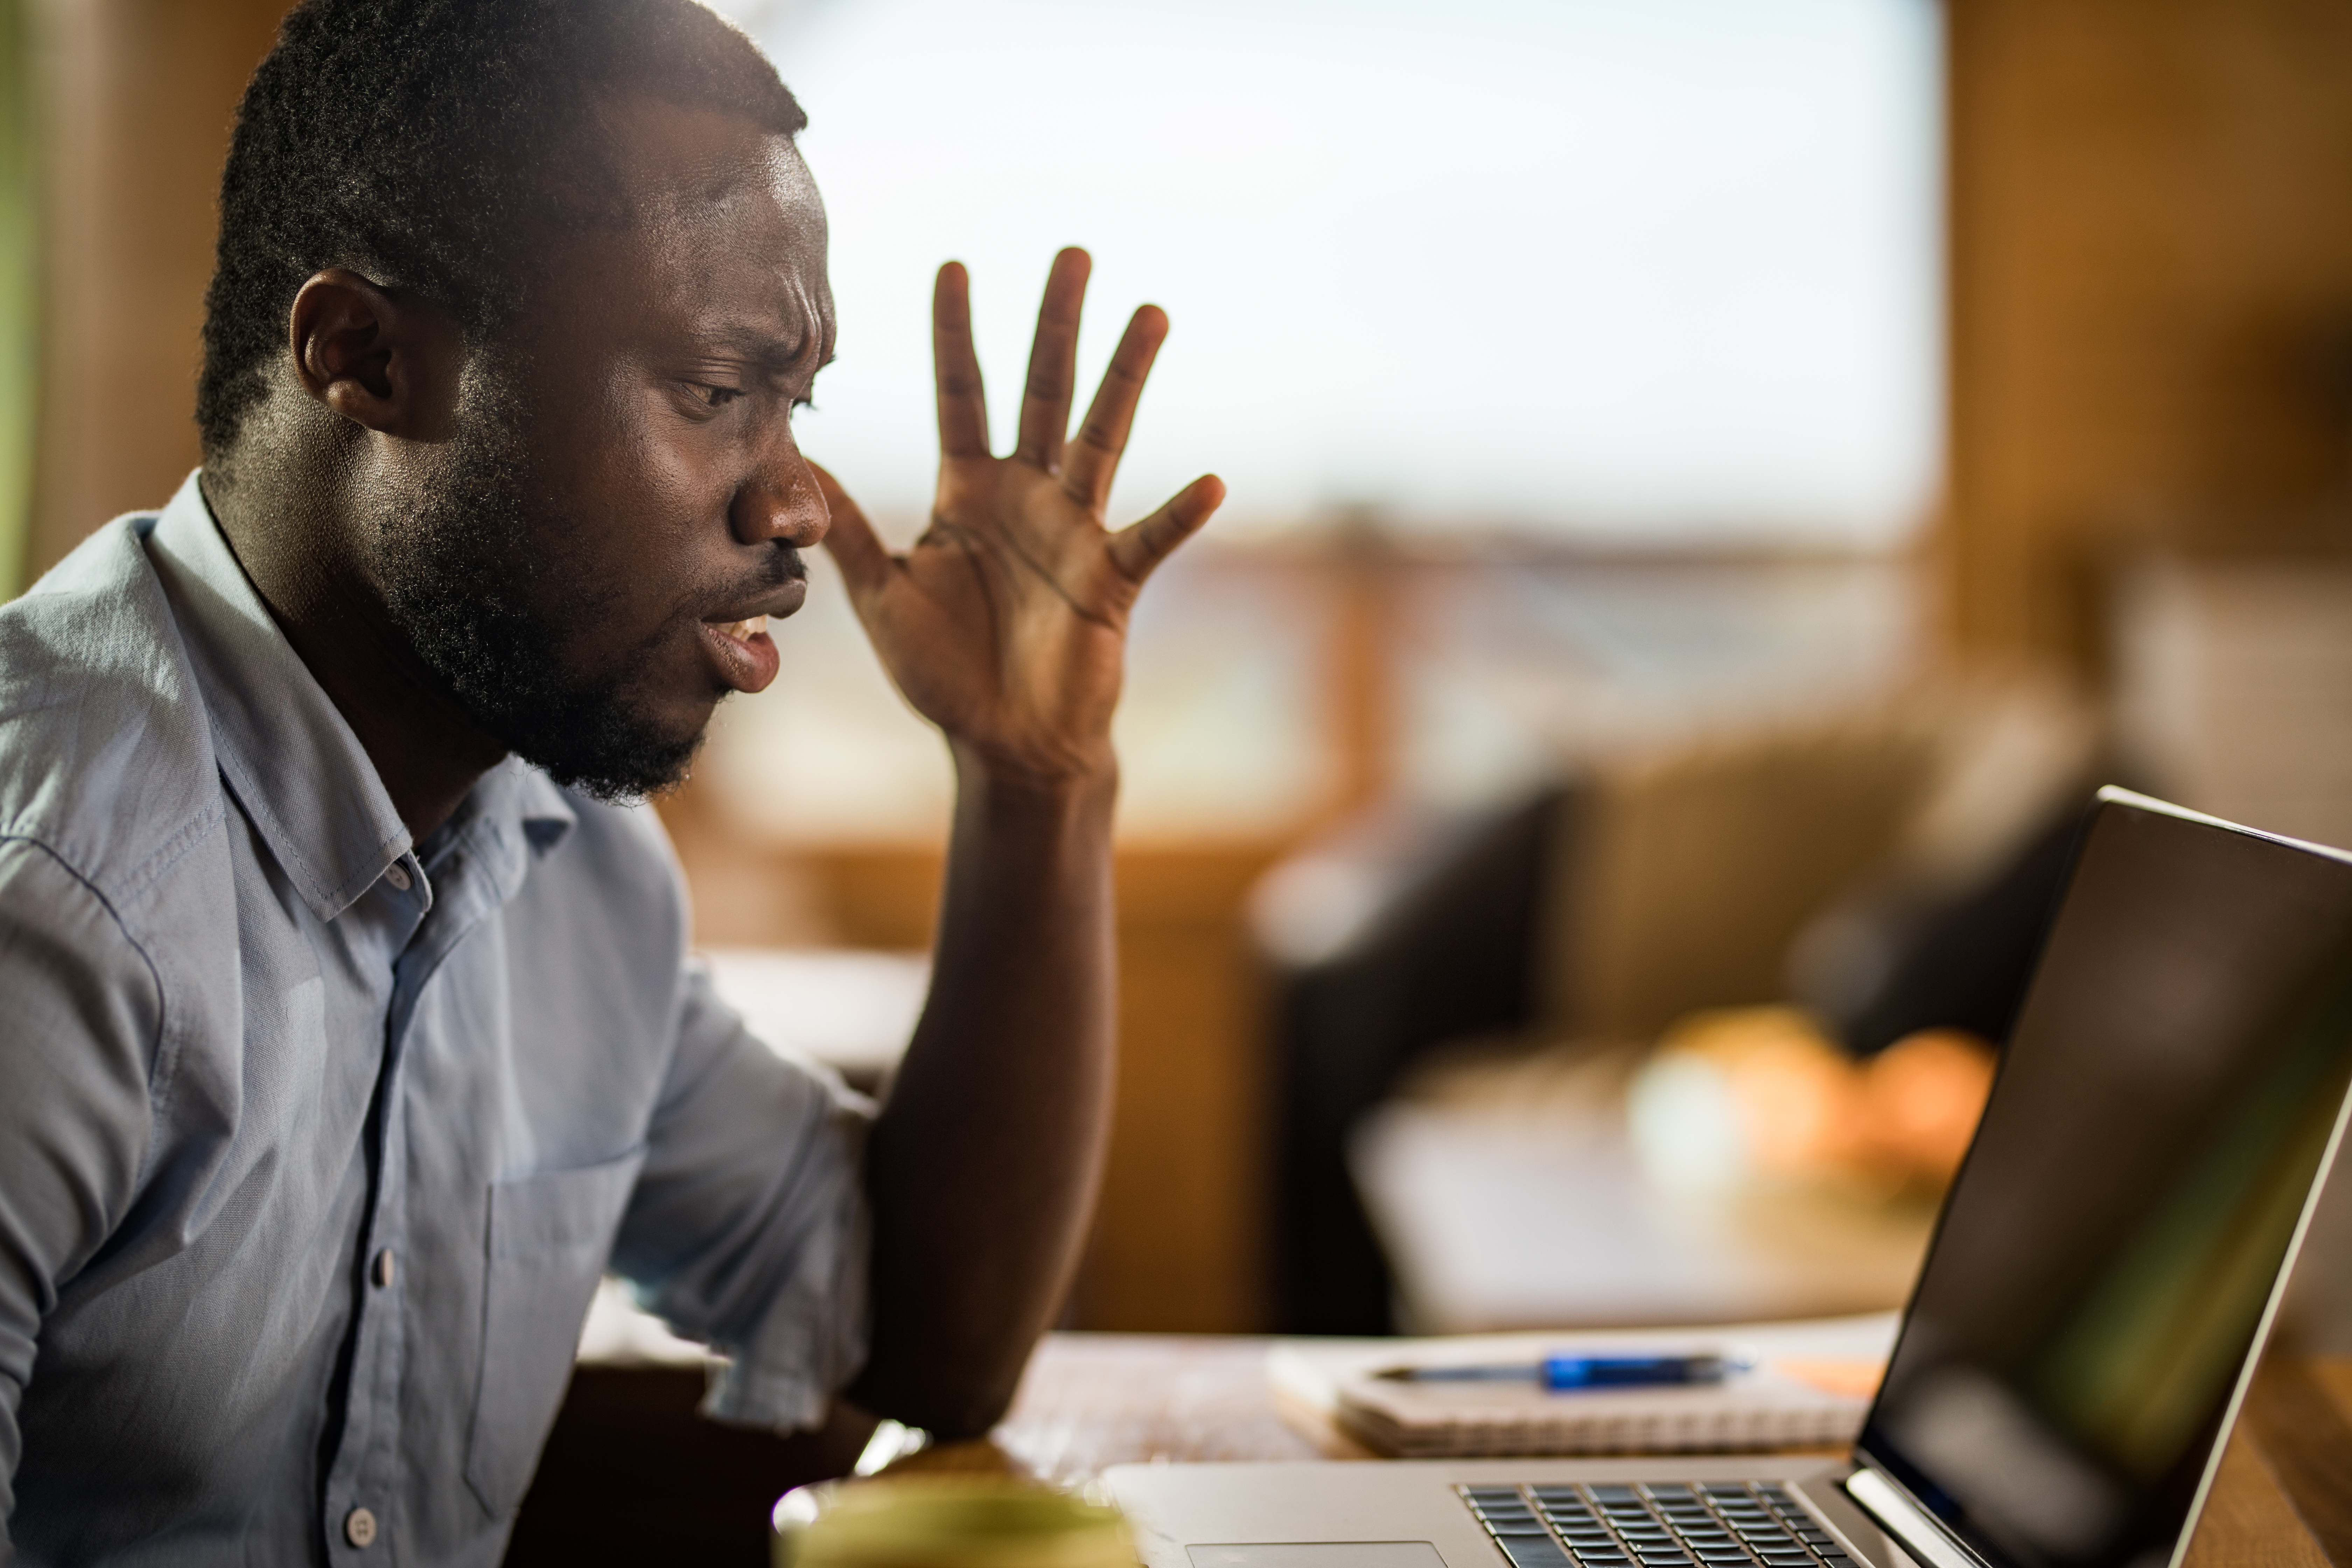 Frustrated black man reading annoying e-mail on laptop at home.